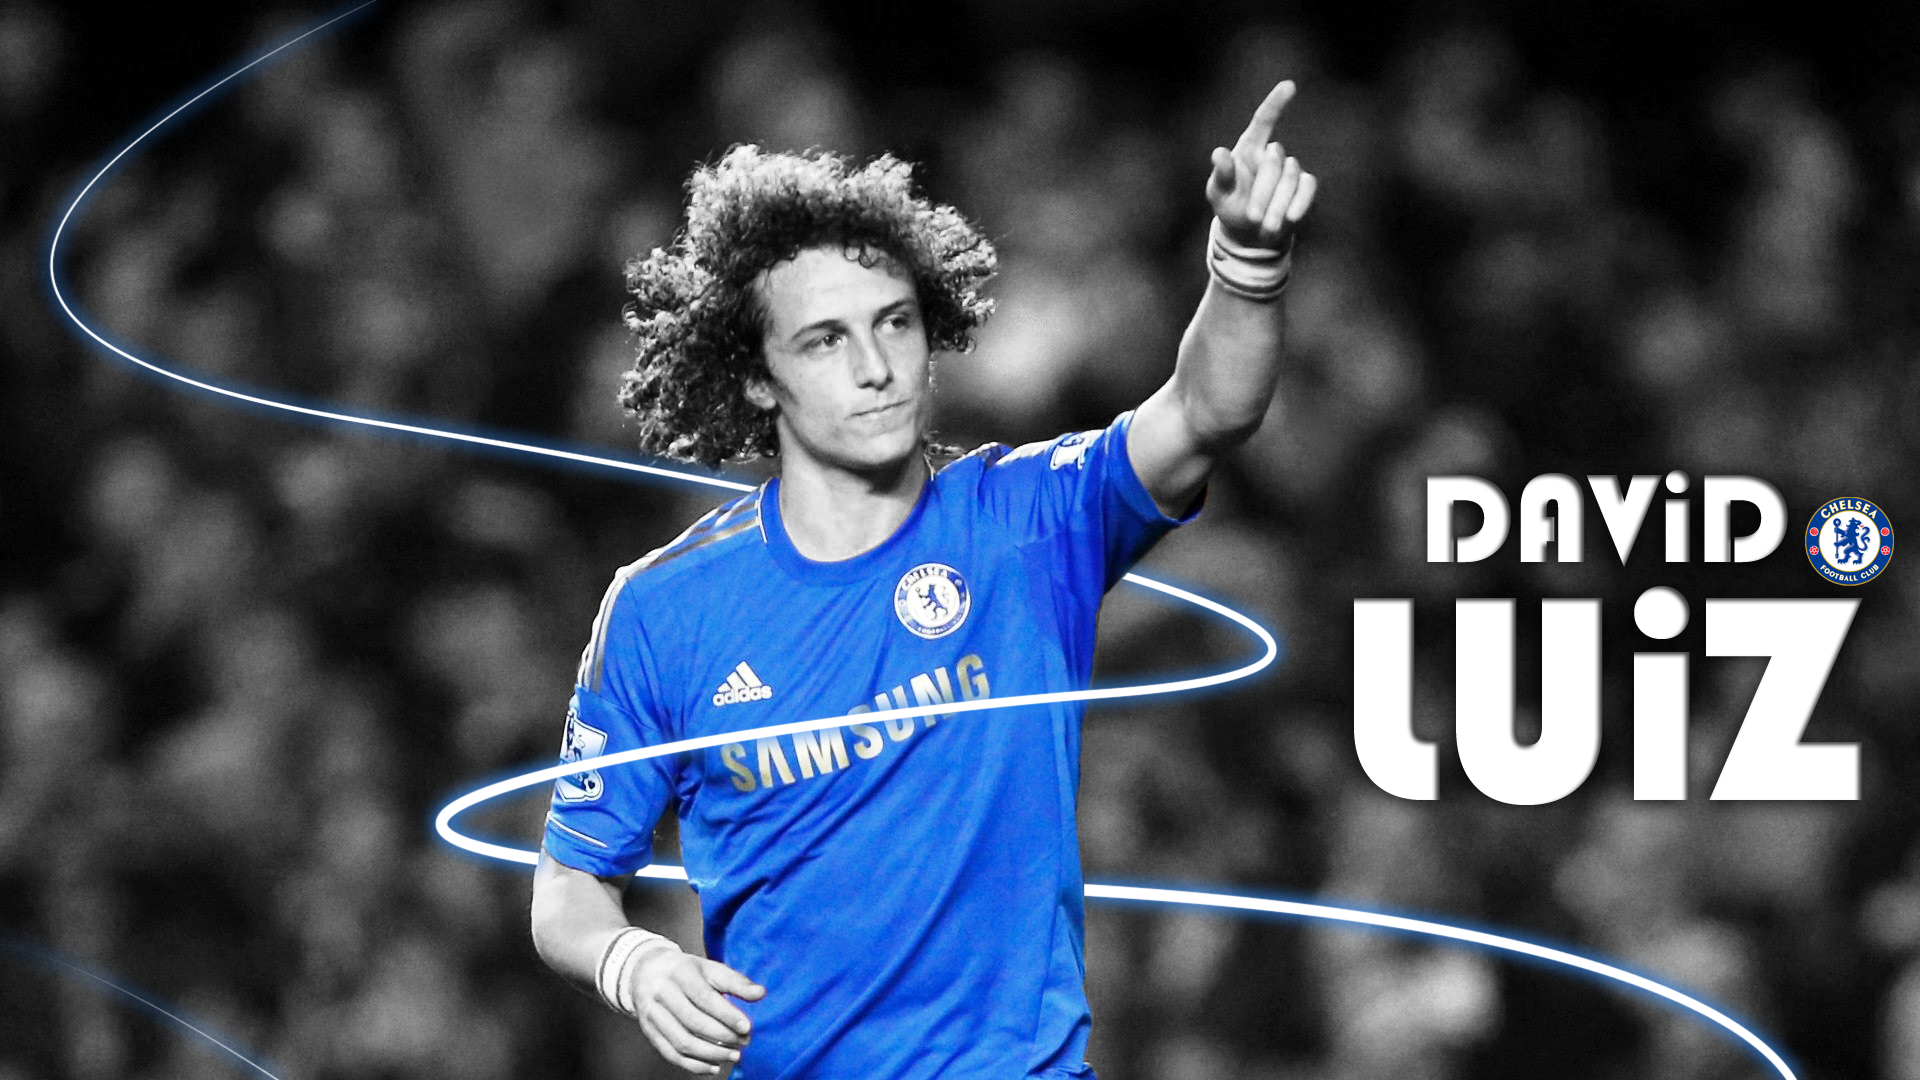 David Luiz Wallpaper 2   1920 X 1080 stmednet 1920x1080